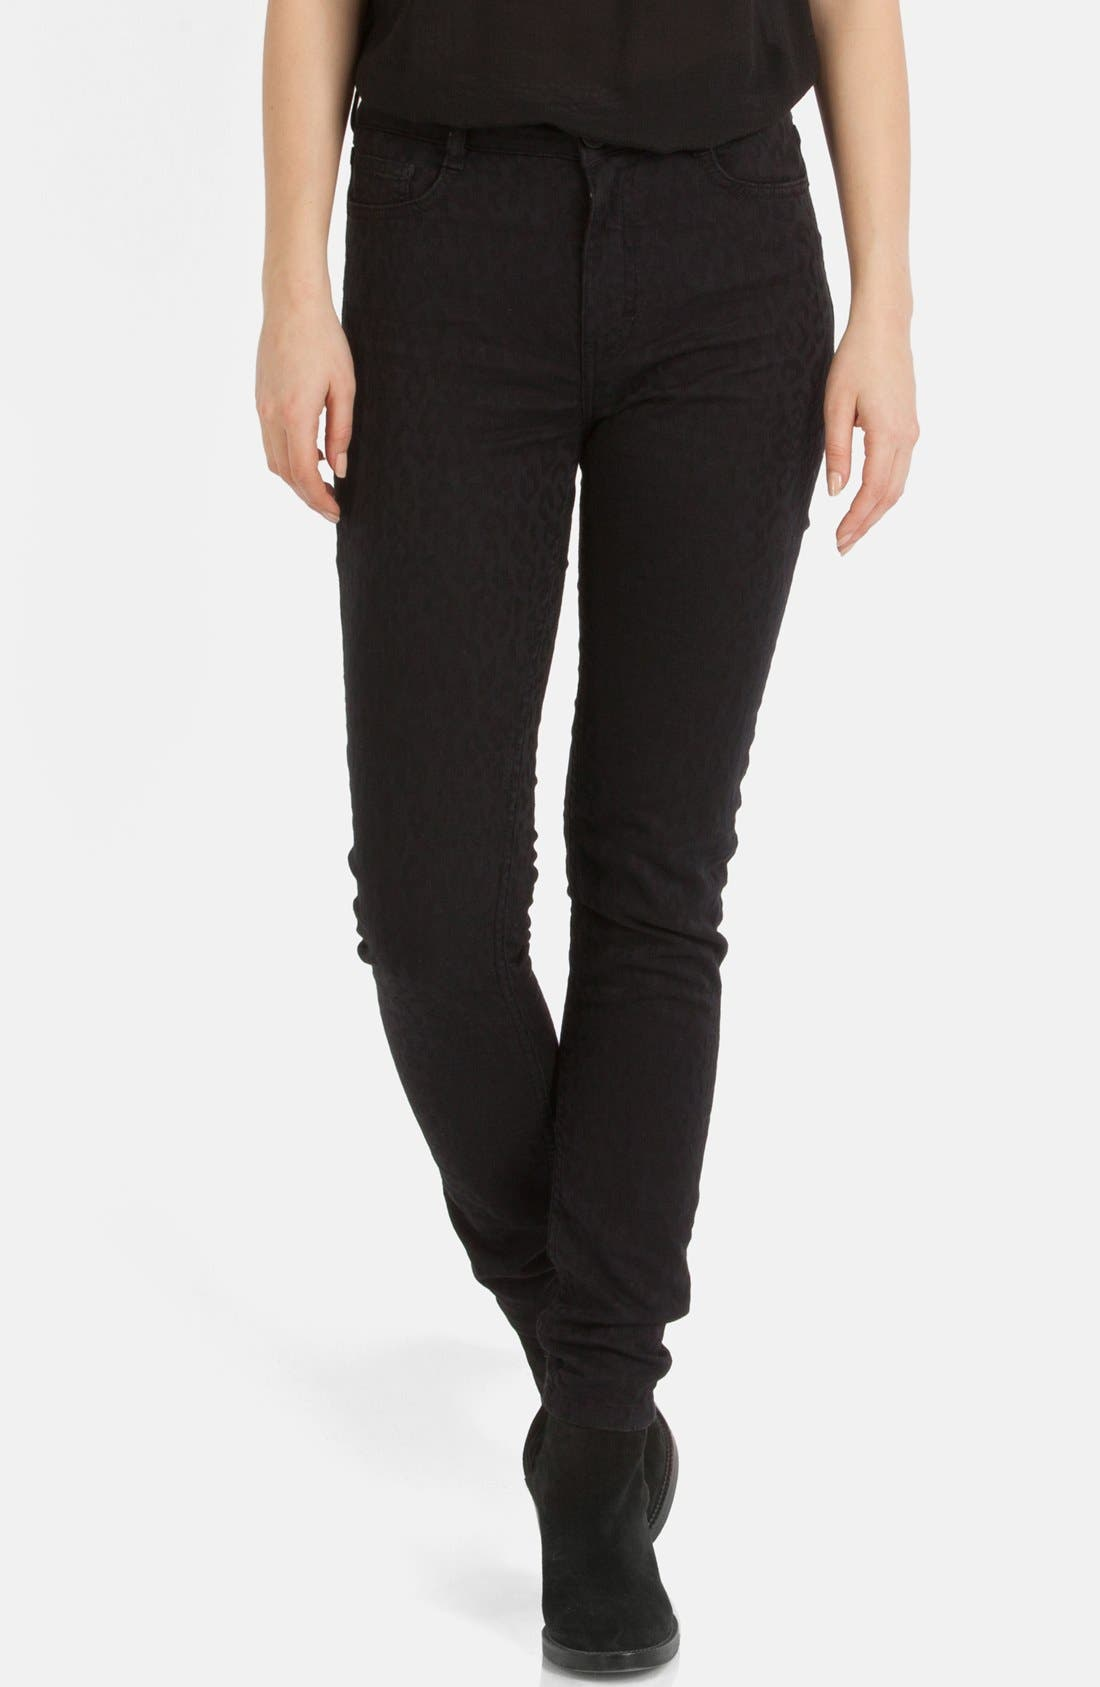 Main Image - maje 'Endless' Stretch Jacquard Skinny Jeans